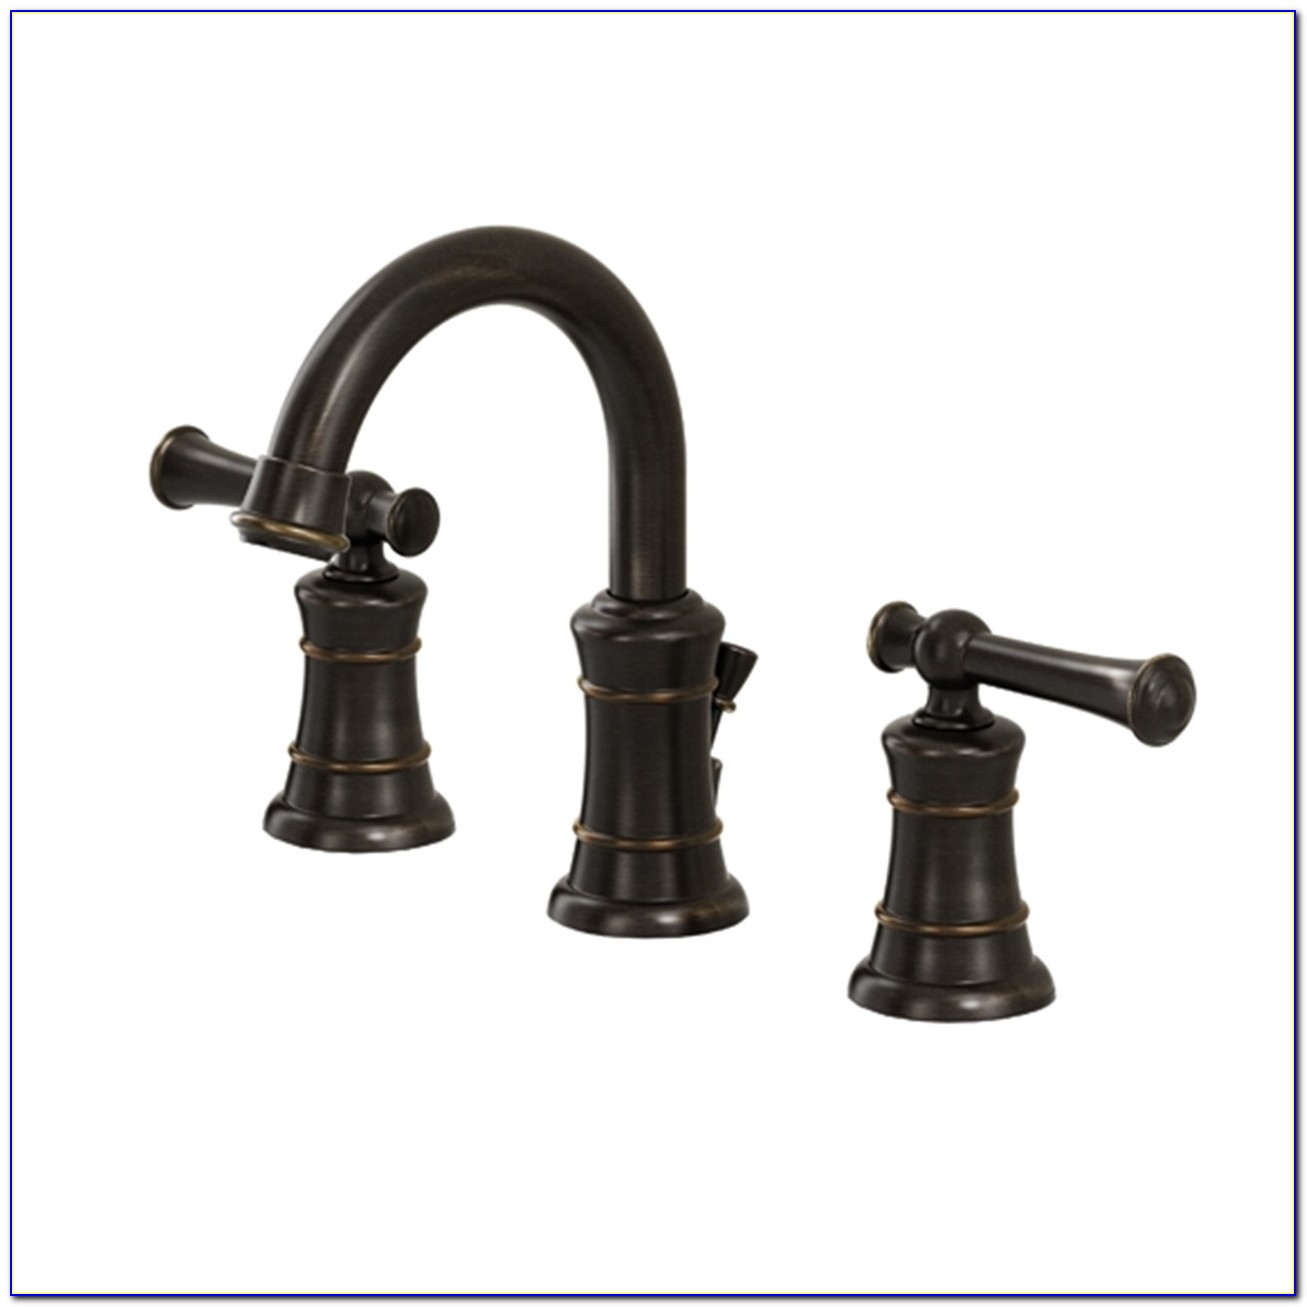 Delta Bathroom Faucets 8 Inch Spread